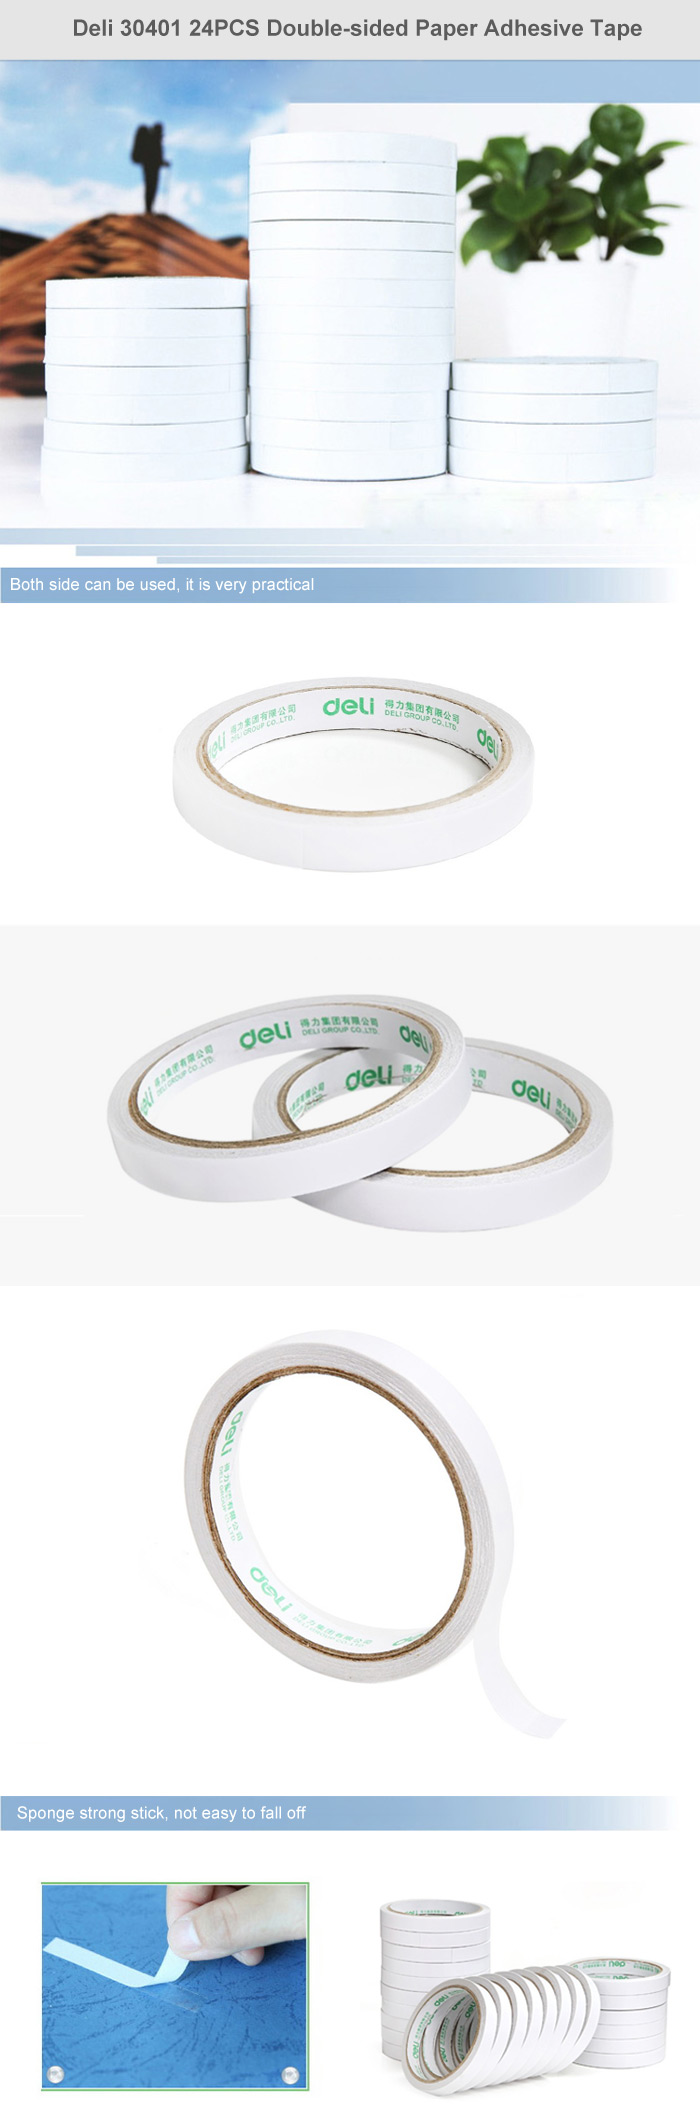 Deli 30401 24PCS Double-sided Paper Adhesive Tape Office / Student Supplies